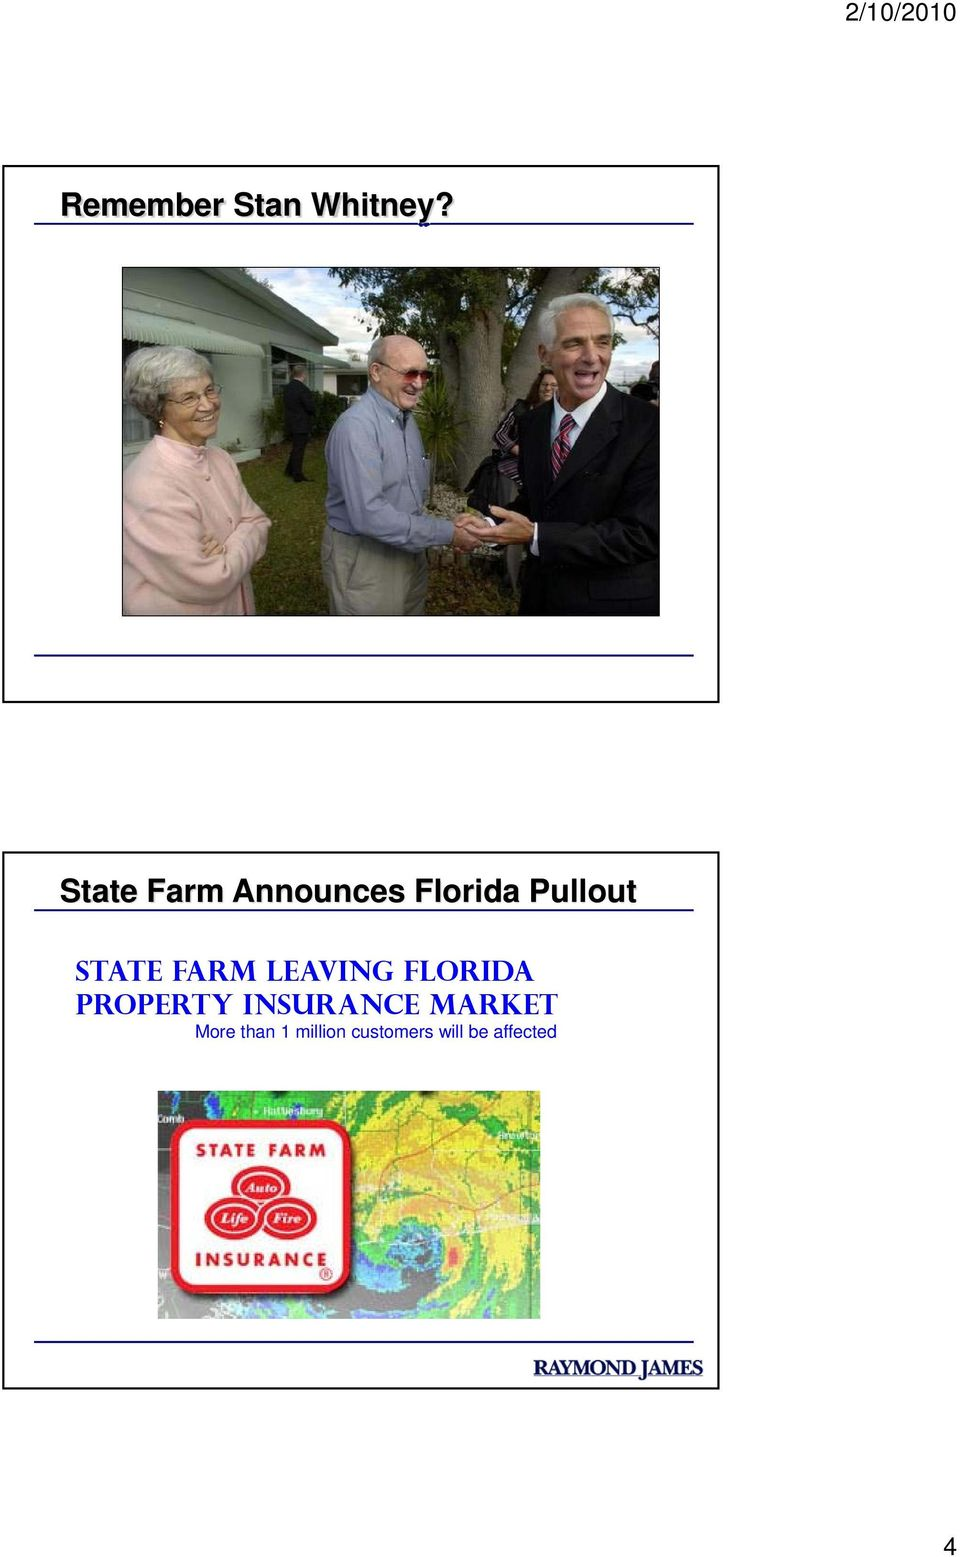 State Farm leaving Florida property